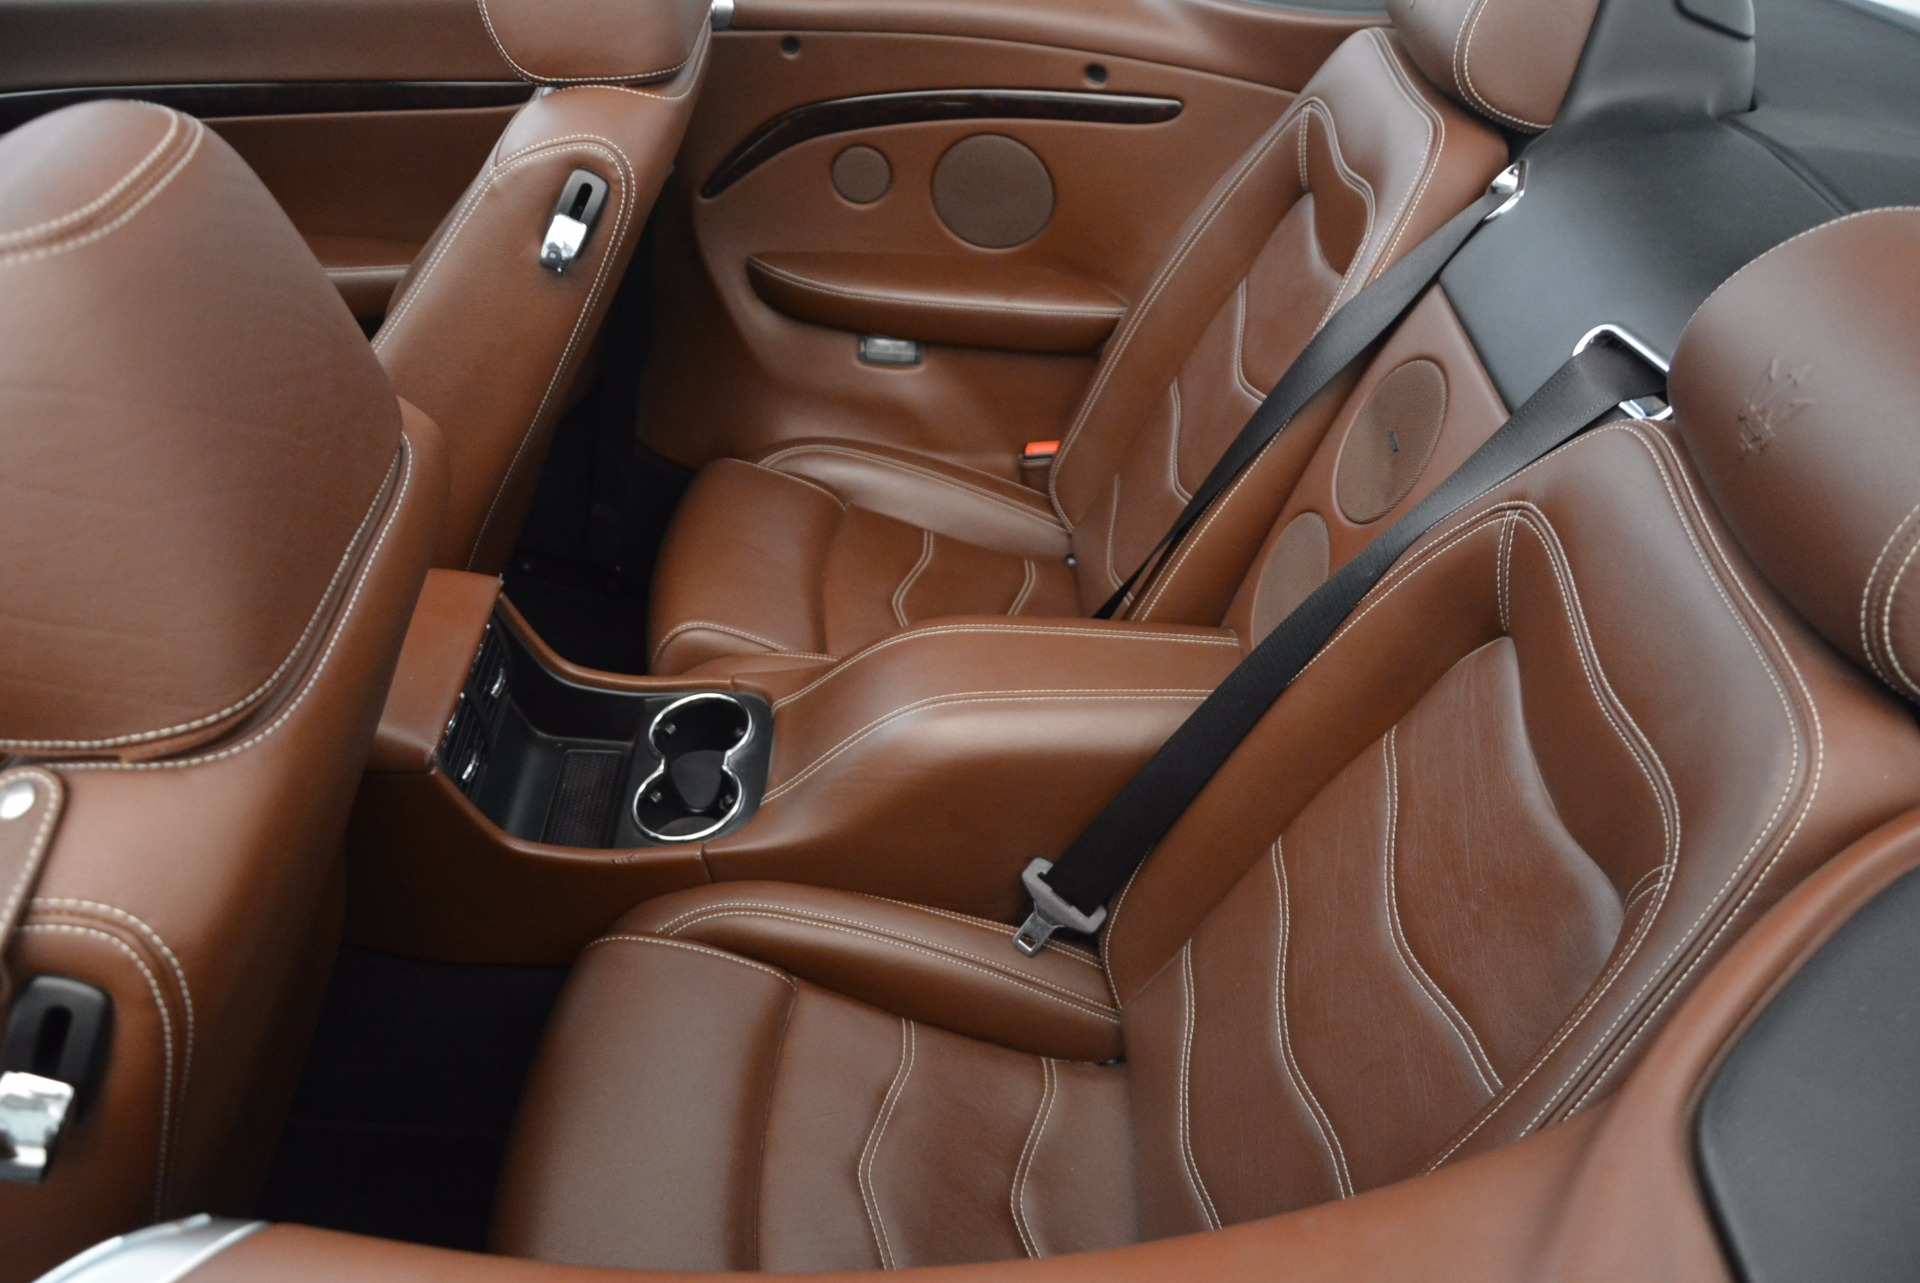 Used 2012 Maserati GranTurismo Sport For Sale In Westport, CT 1097_p25